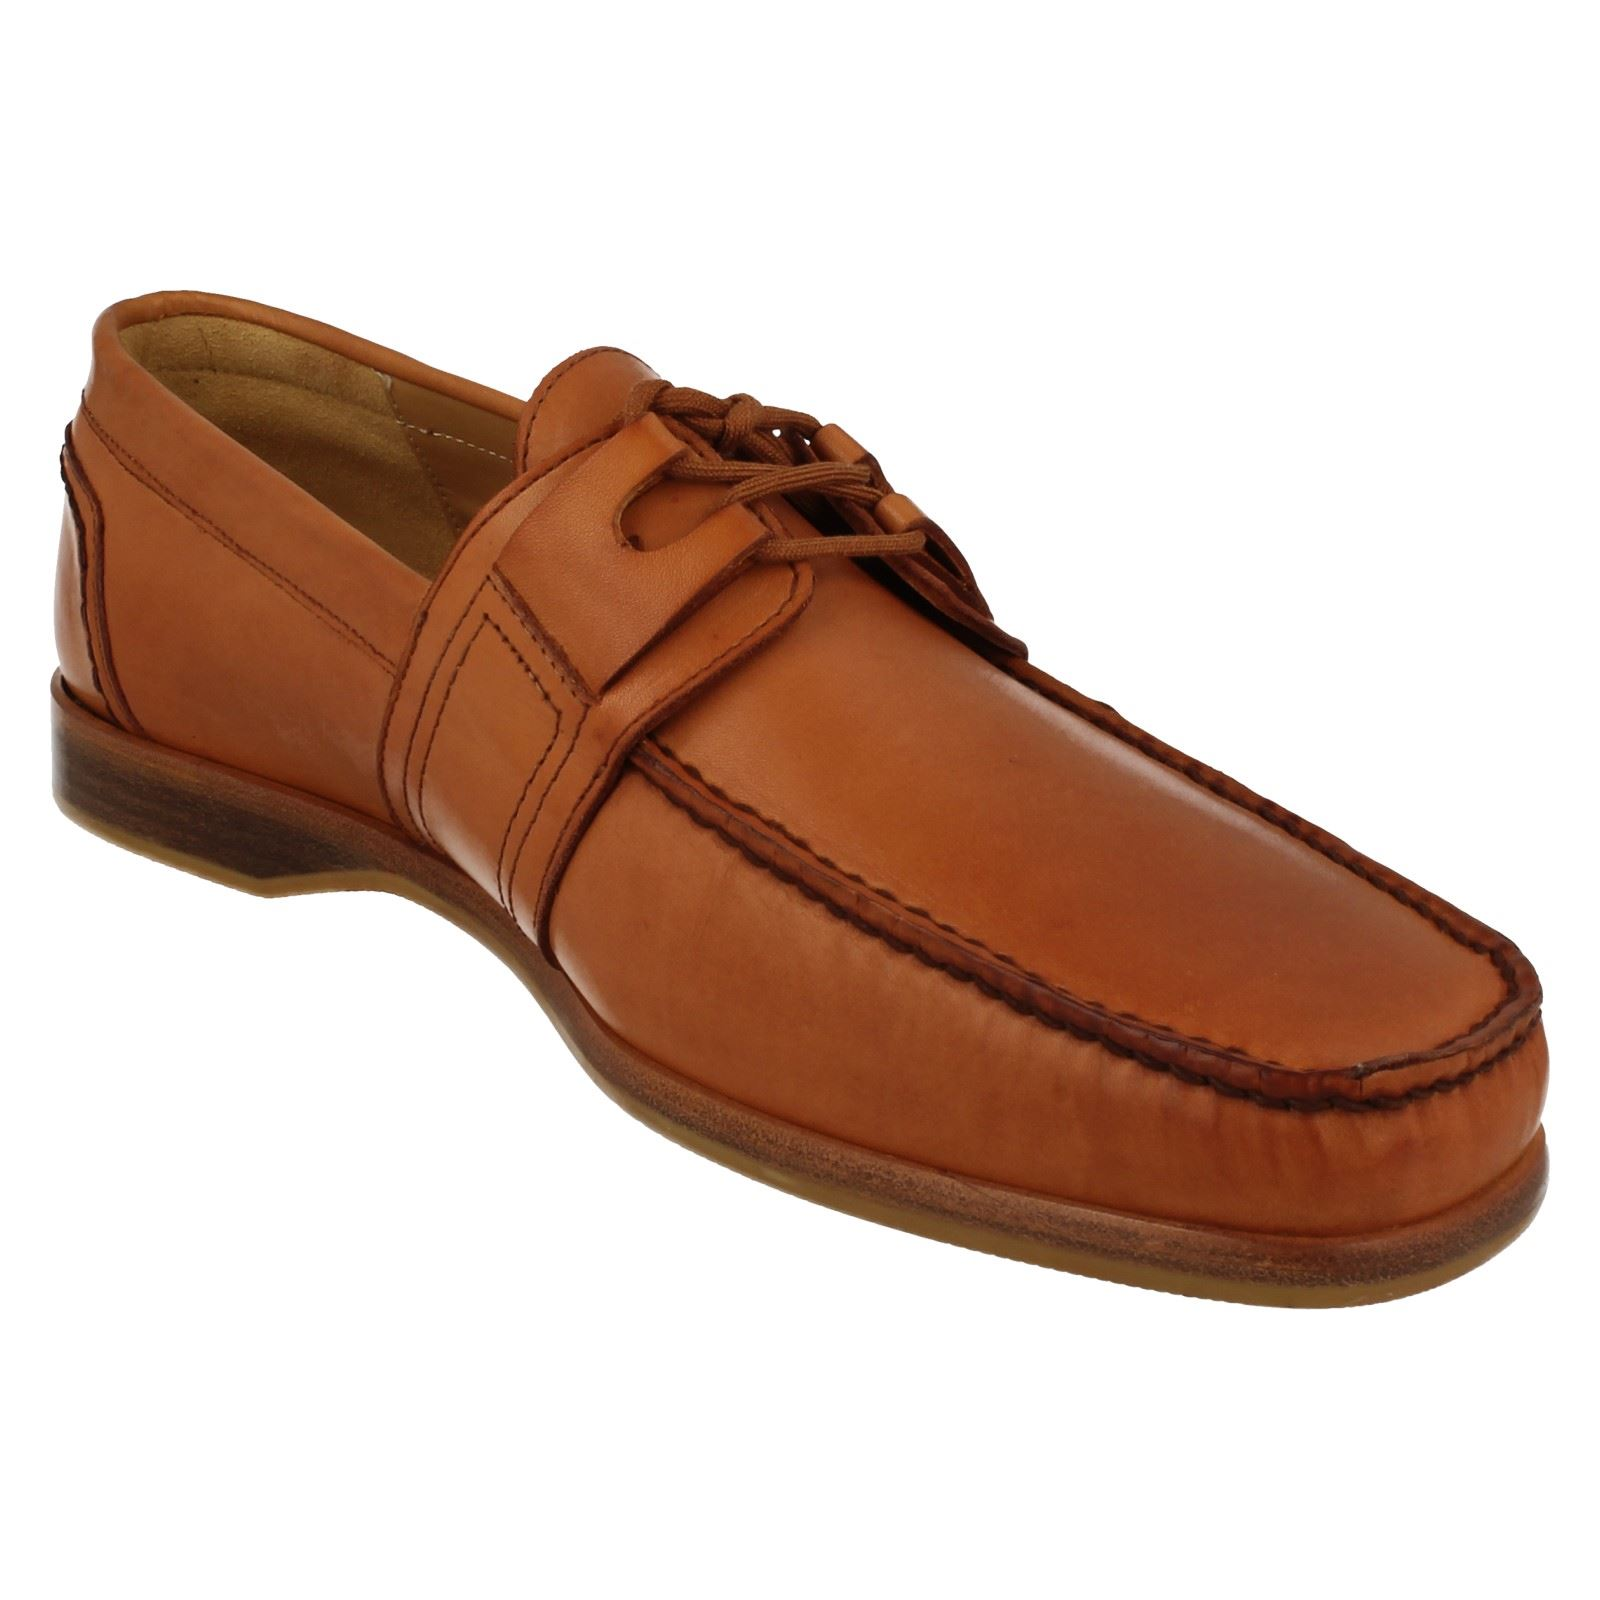 Grenson Shoes Uk Ebay